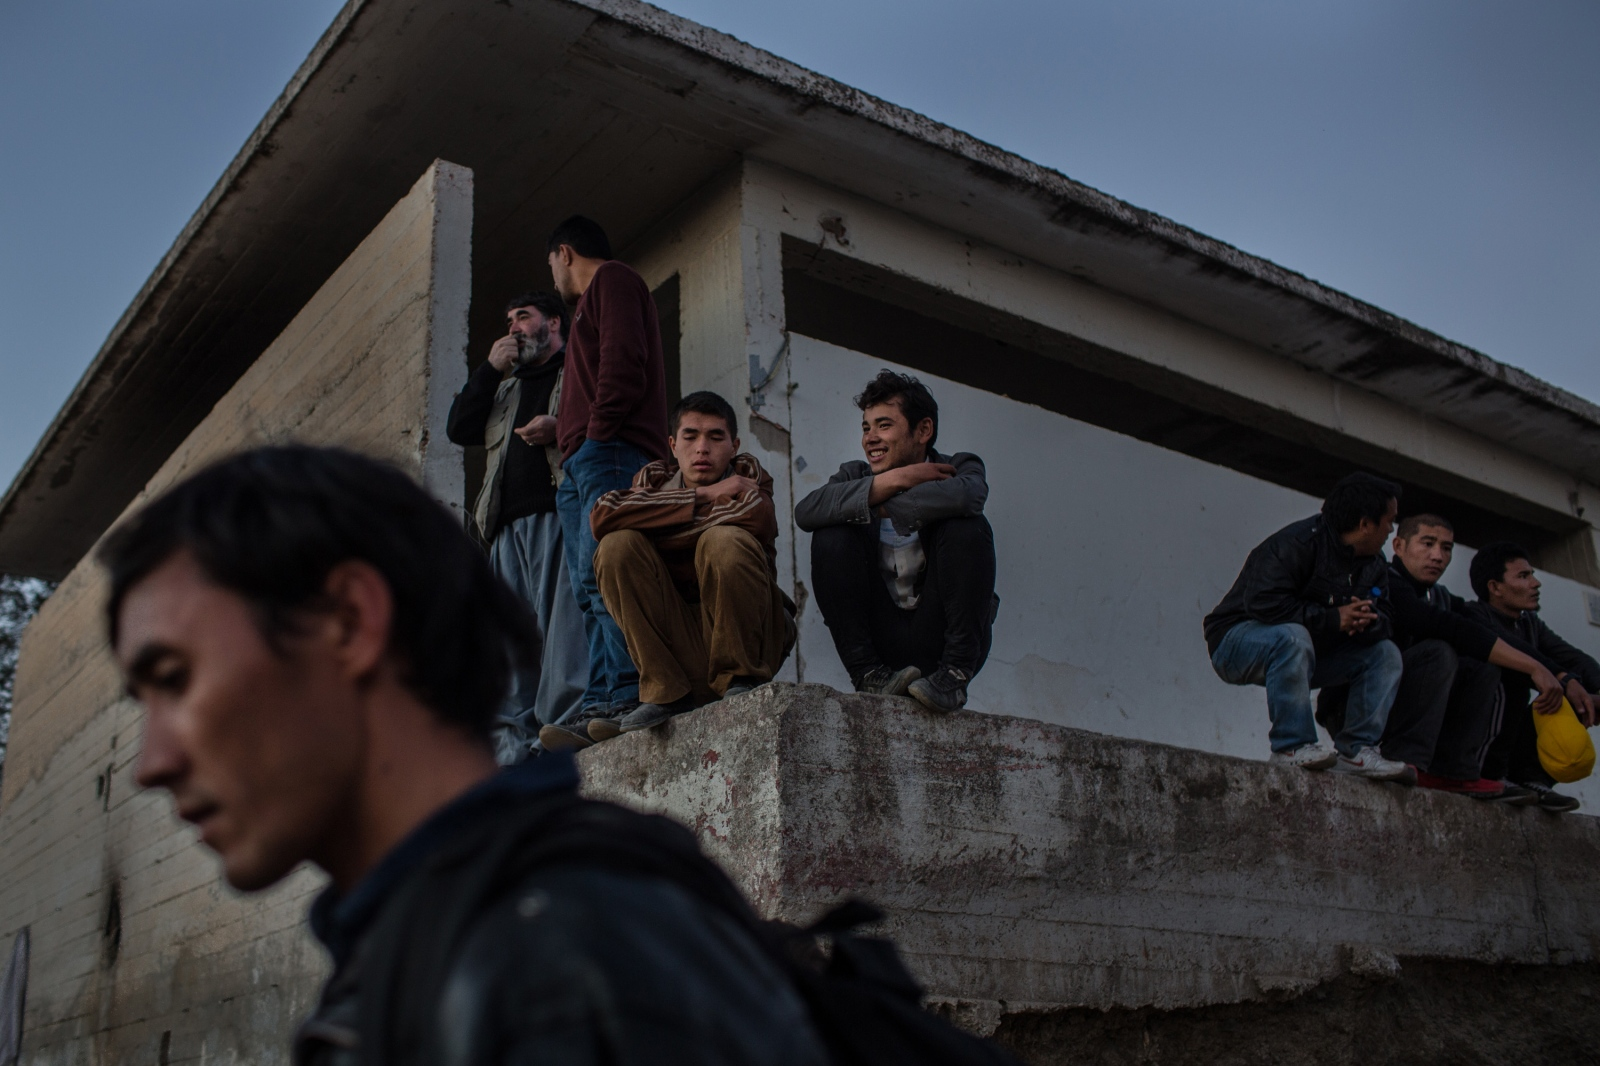 Refugees and migrants from Afghanistan and Syria wait for registration numbers at the Moria transit camp in Lesbos, Greece, on November 16, 2015.